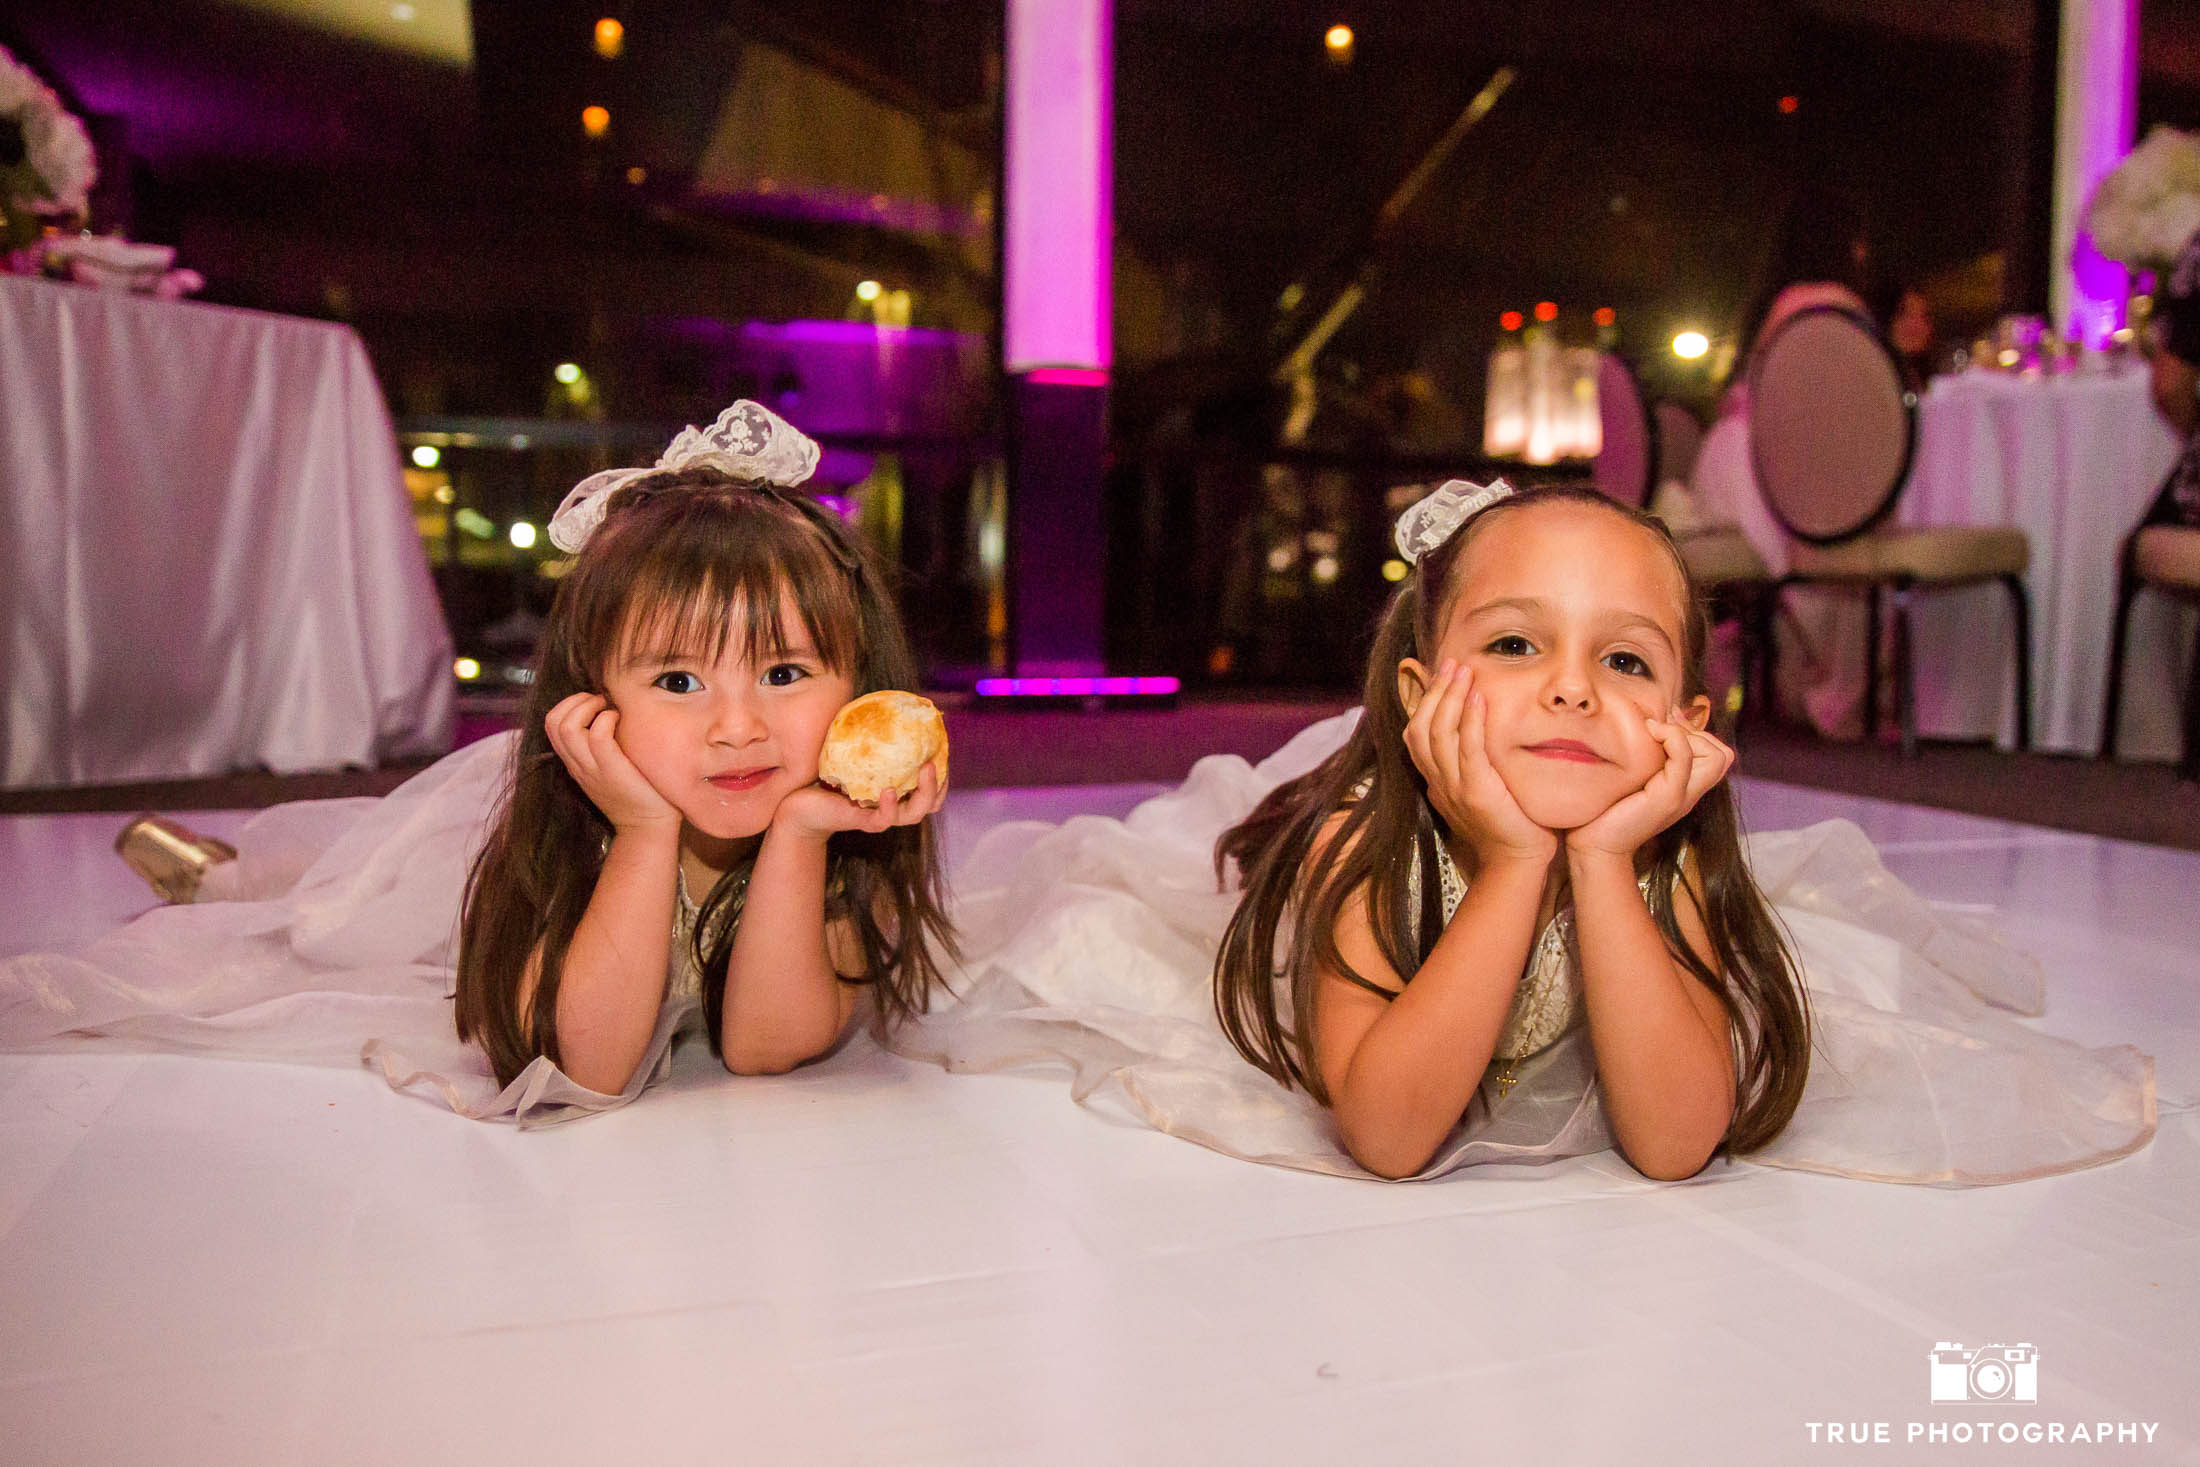 Cute flowergirls on Dancefloor